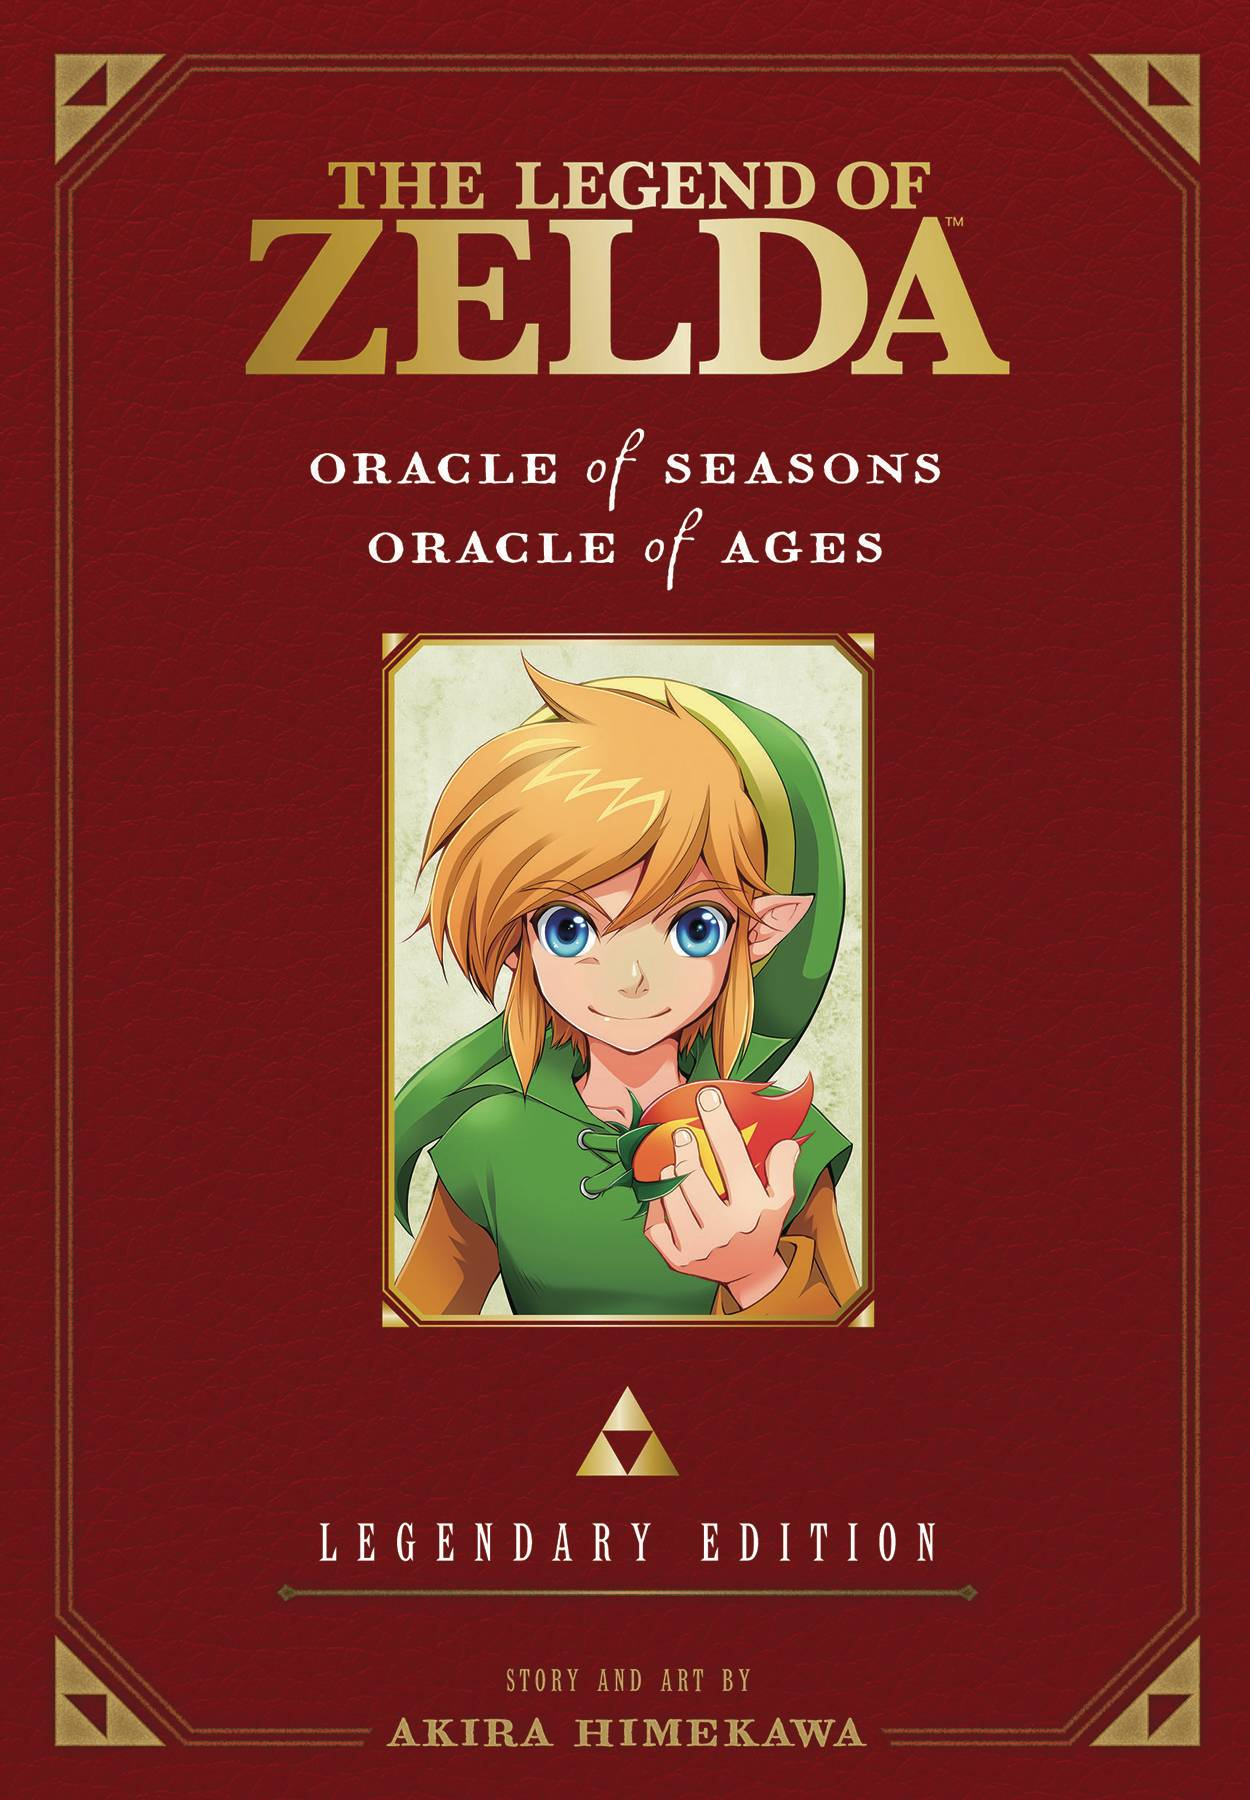 LEGEND OF ZELDA LEGENDARY ED GN VOL 02 ORACLE SEASONS AGES (